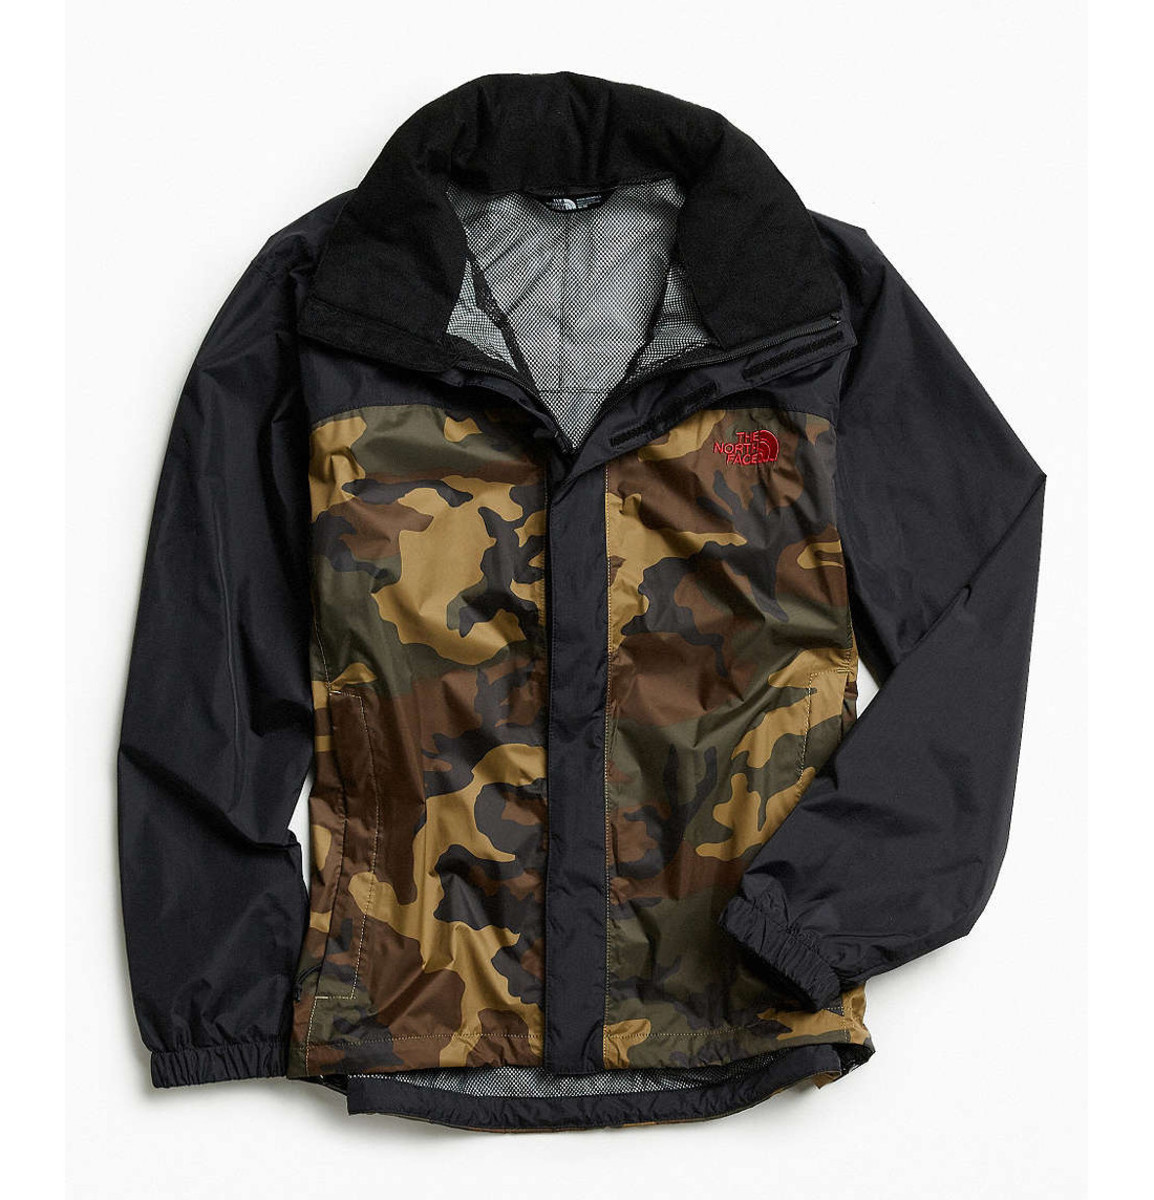 urban-outfitters-the-north-face-camo-resolve-jacket.jpg